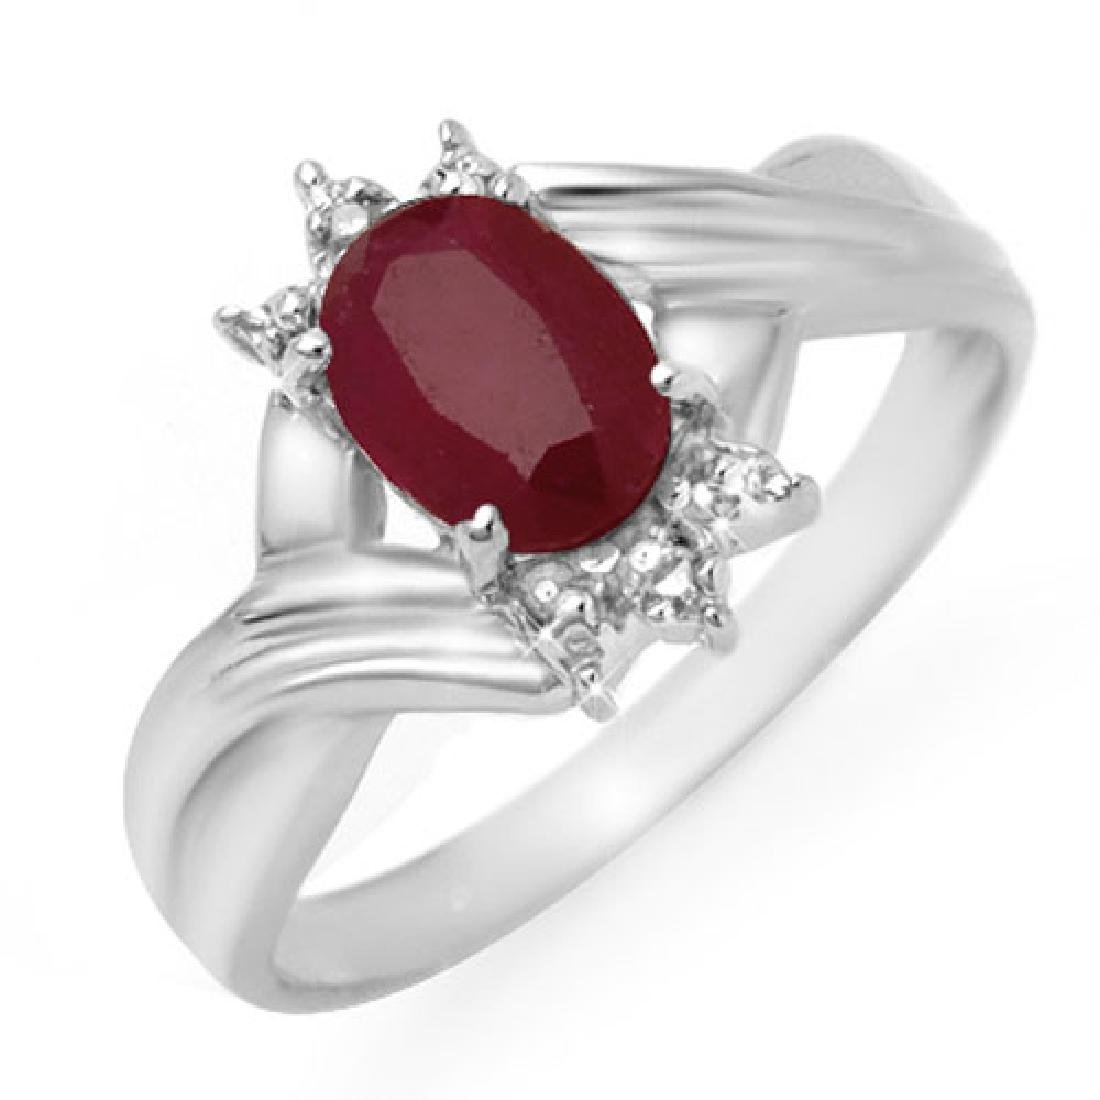 1.12 CTW Ruby & Diamond Ring 10K White Gold